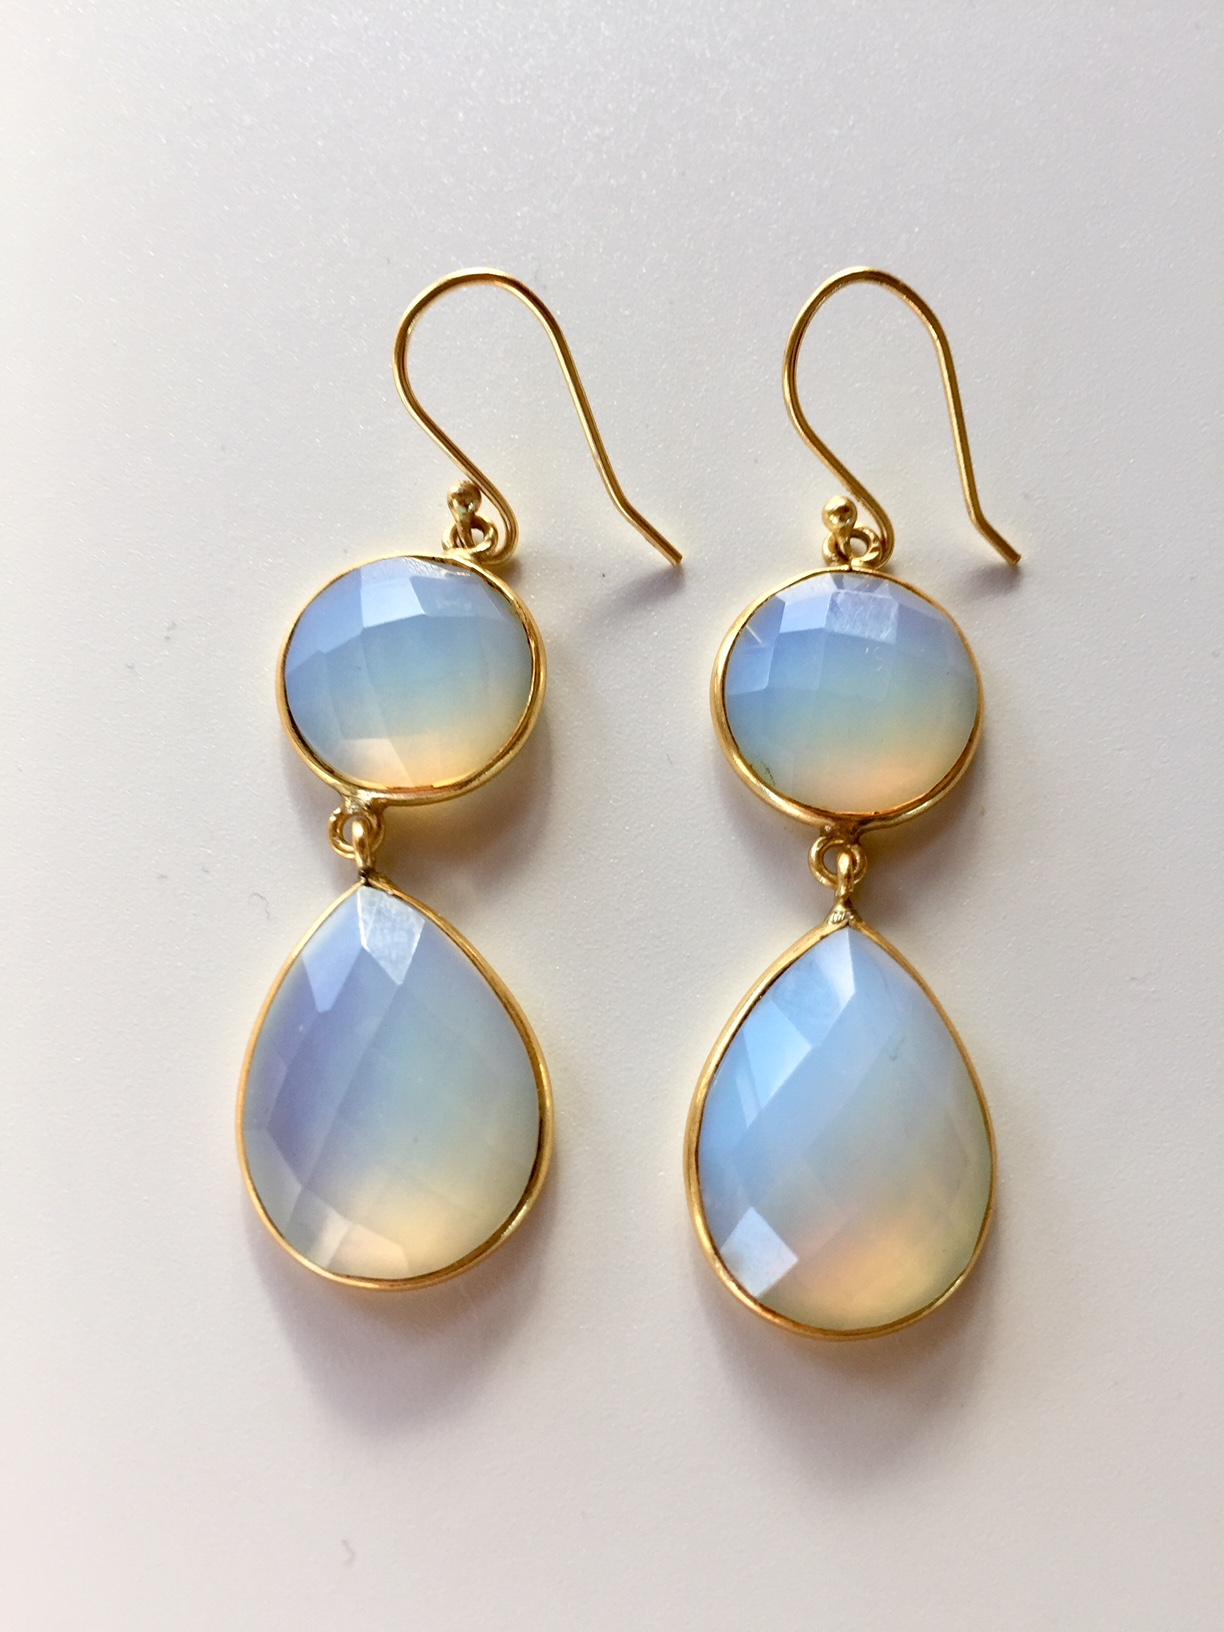 Well-liked Gold Moon Stone Earrings - Julie McAfee - Transformational Guide FI99